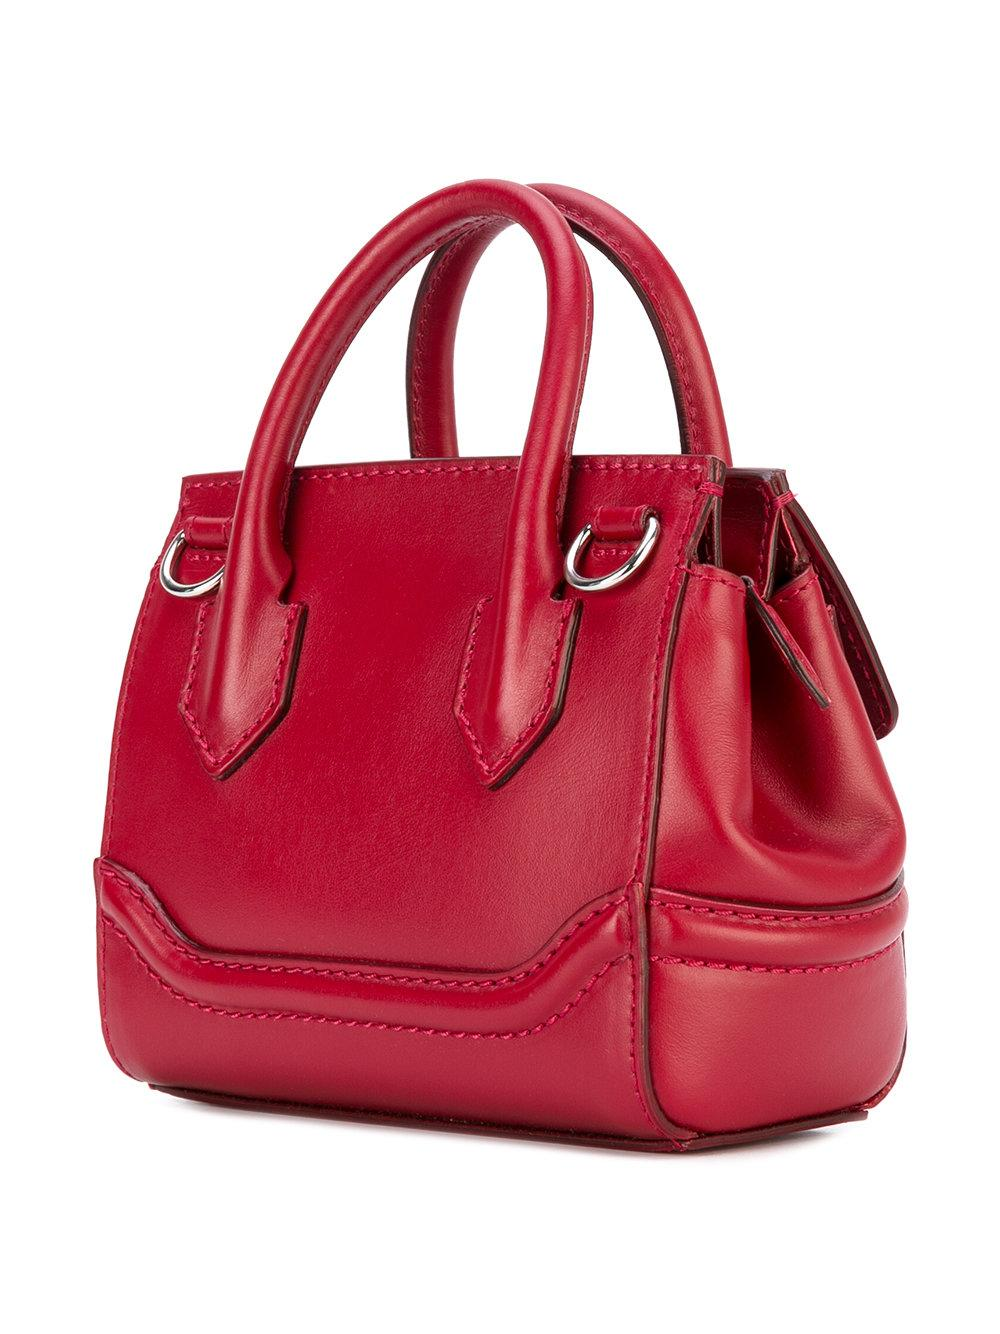 Versace Leather Mini Palazzo Empire Shoulder Bag in Red